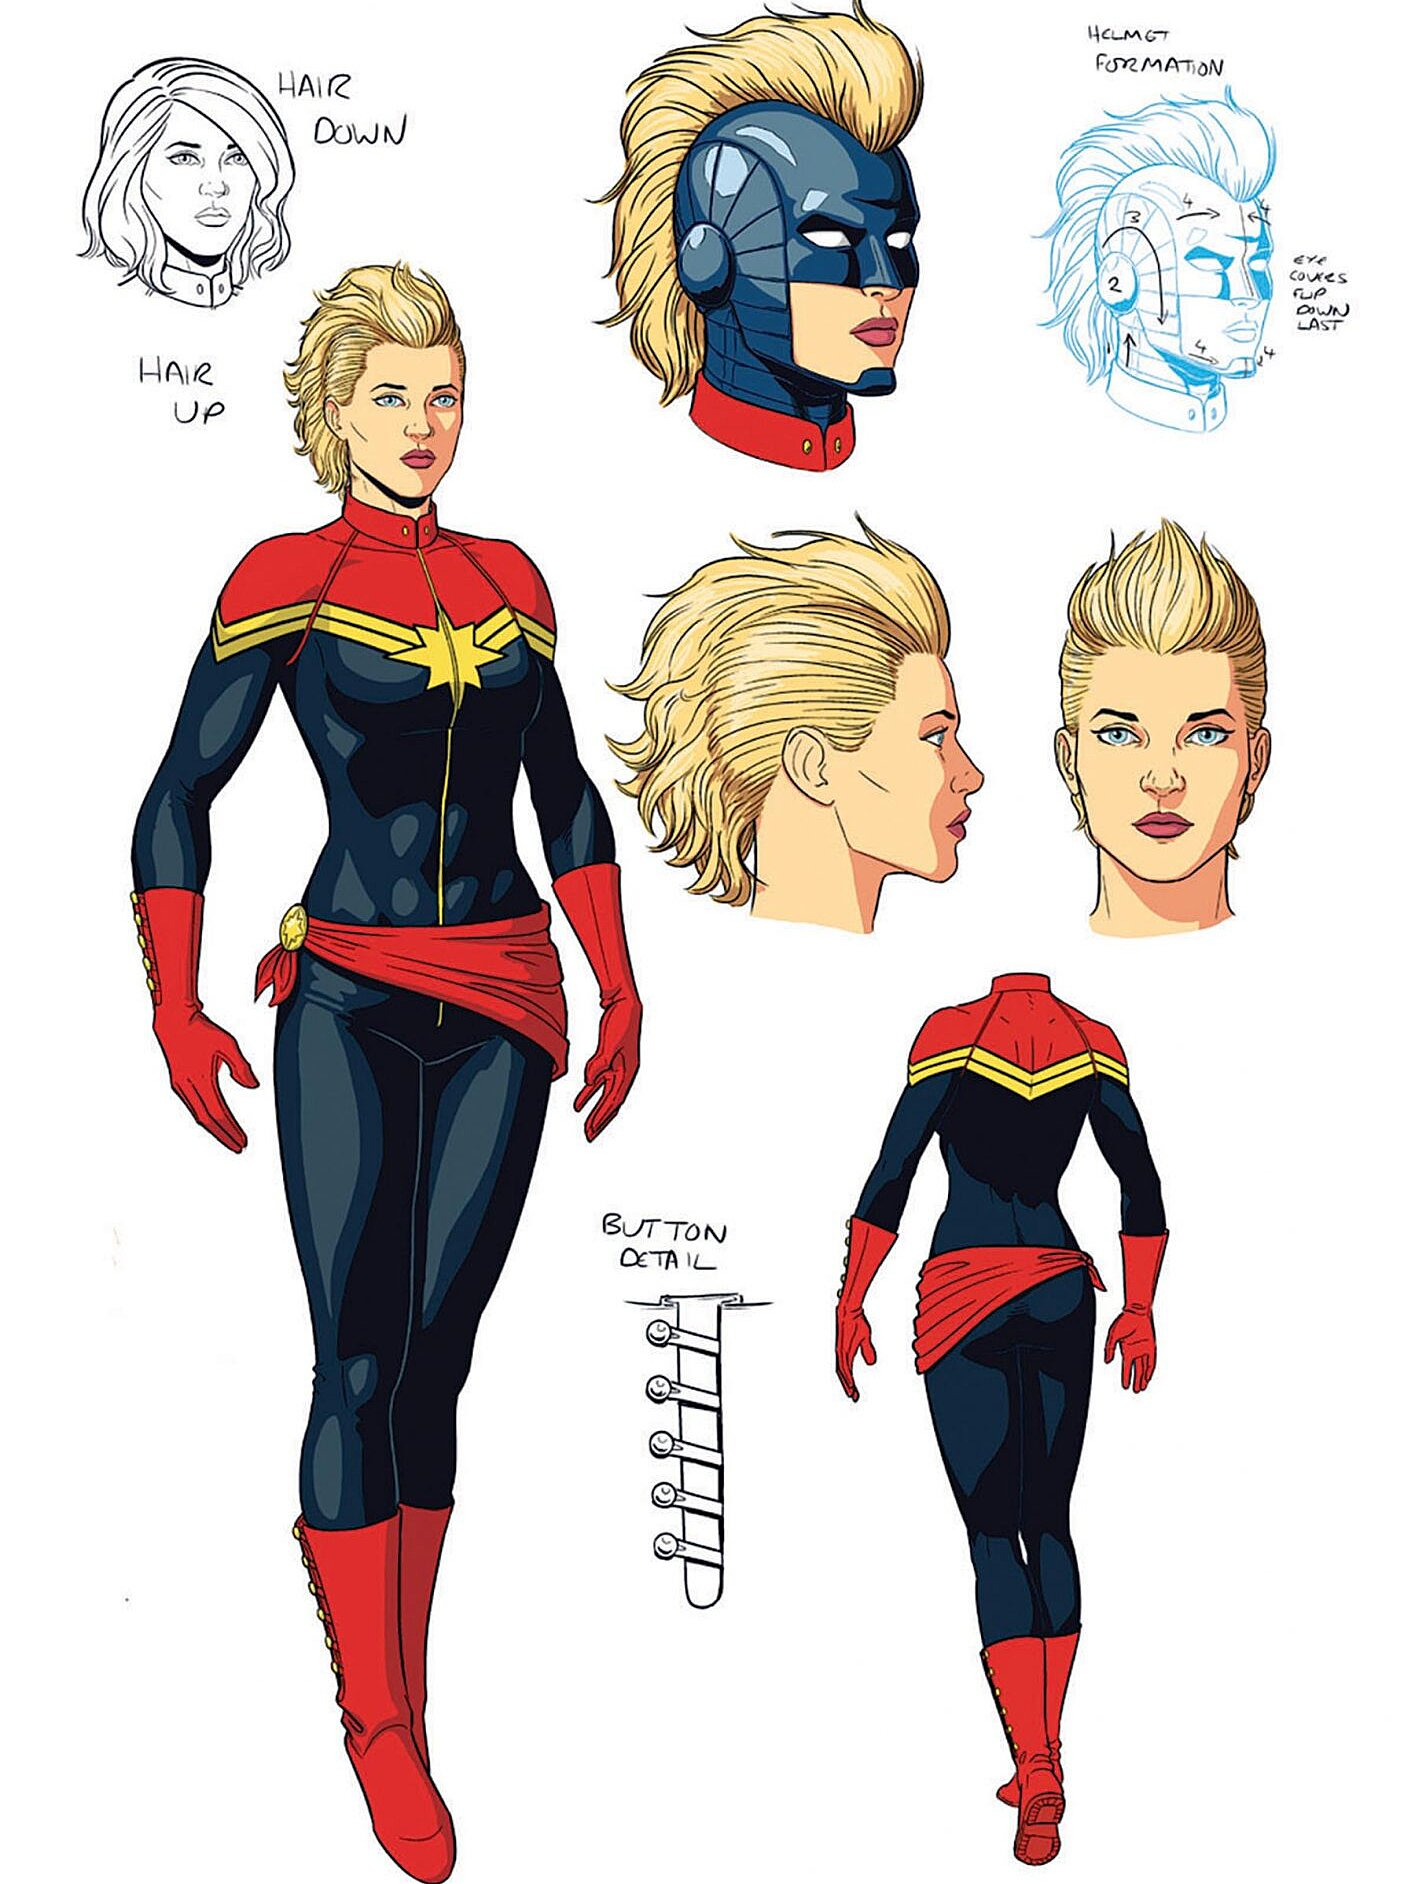 Captain Marvel Kelly Sue Deconnick Helped The Superhero Realize Her Full Potential Ew Com The color scheme is so similar. captain marvel kelly sue deconnick